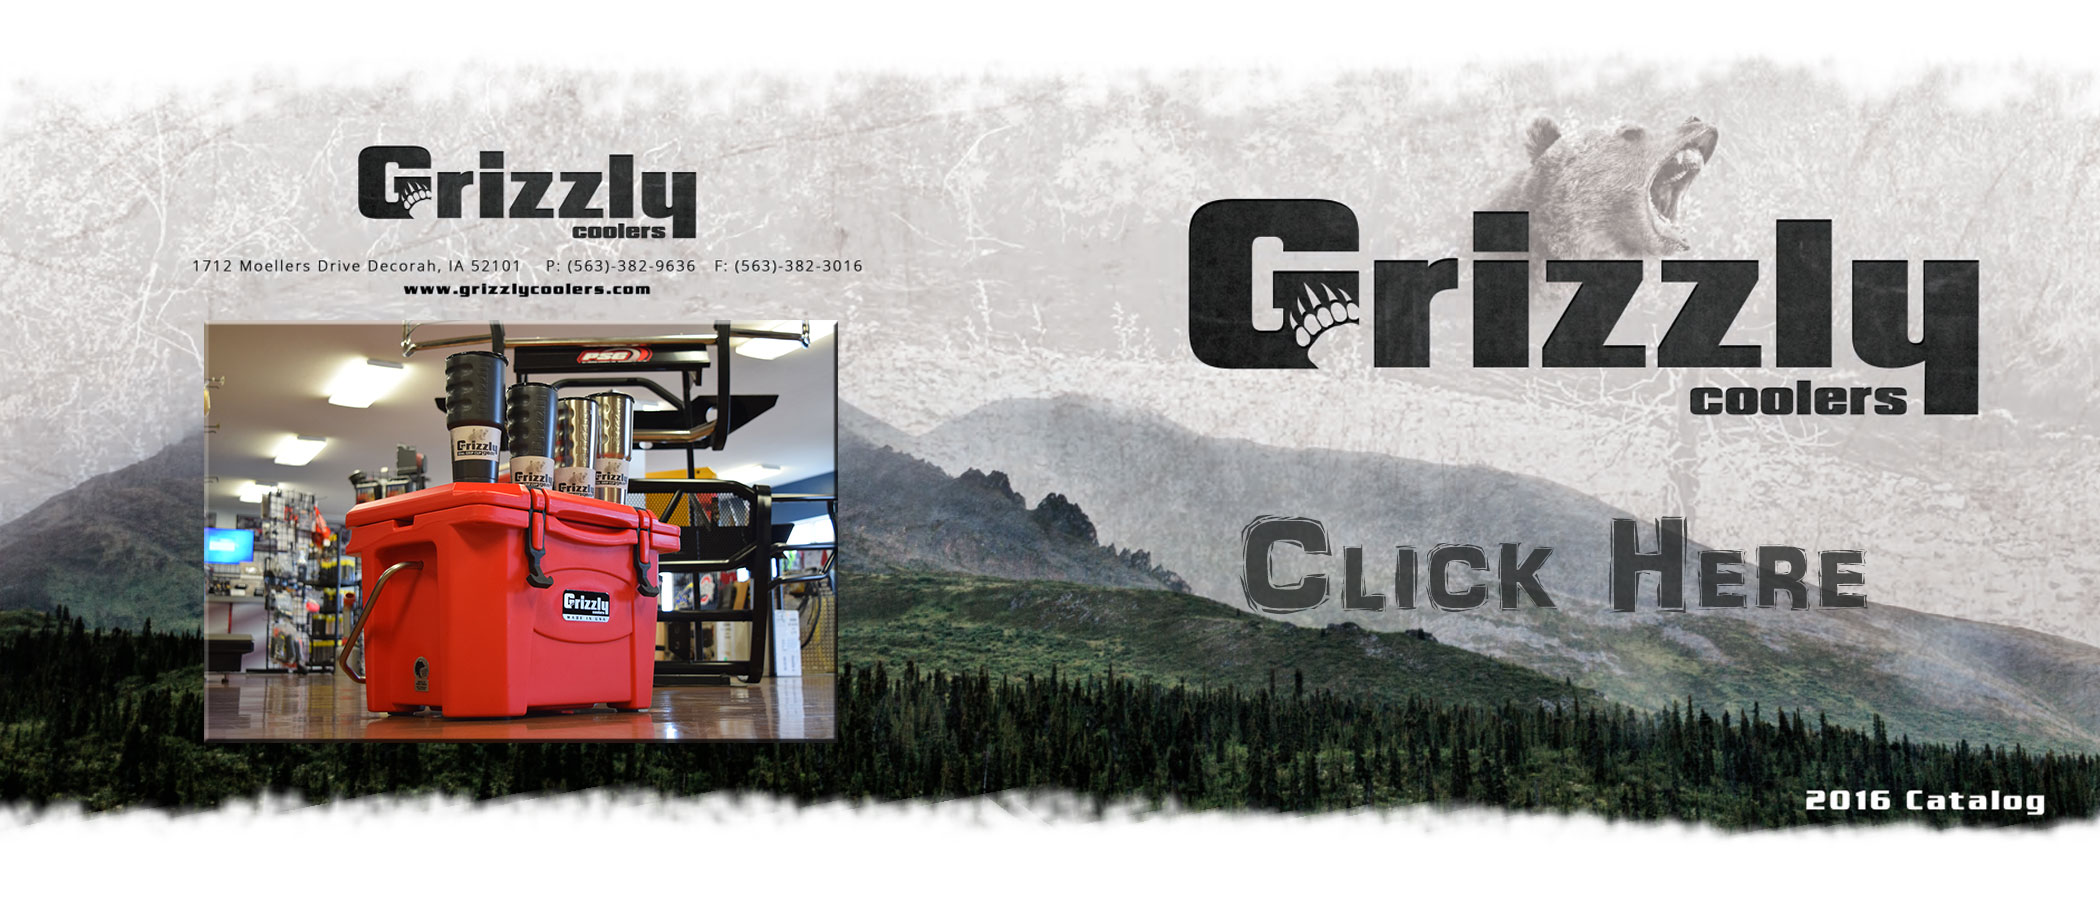 Grizzly Coolers Catalog